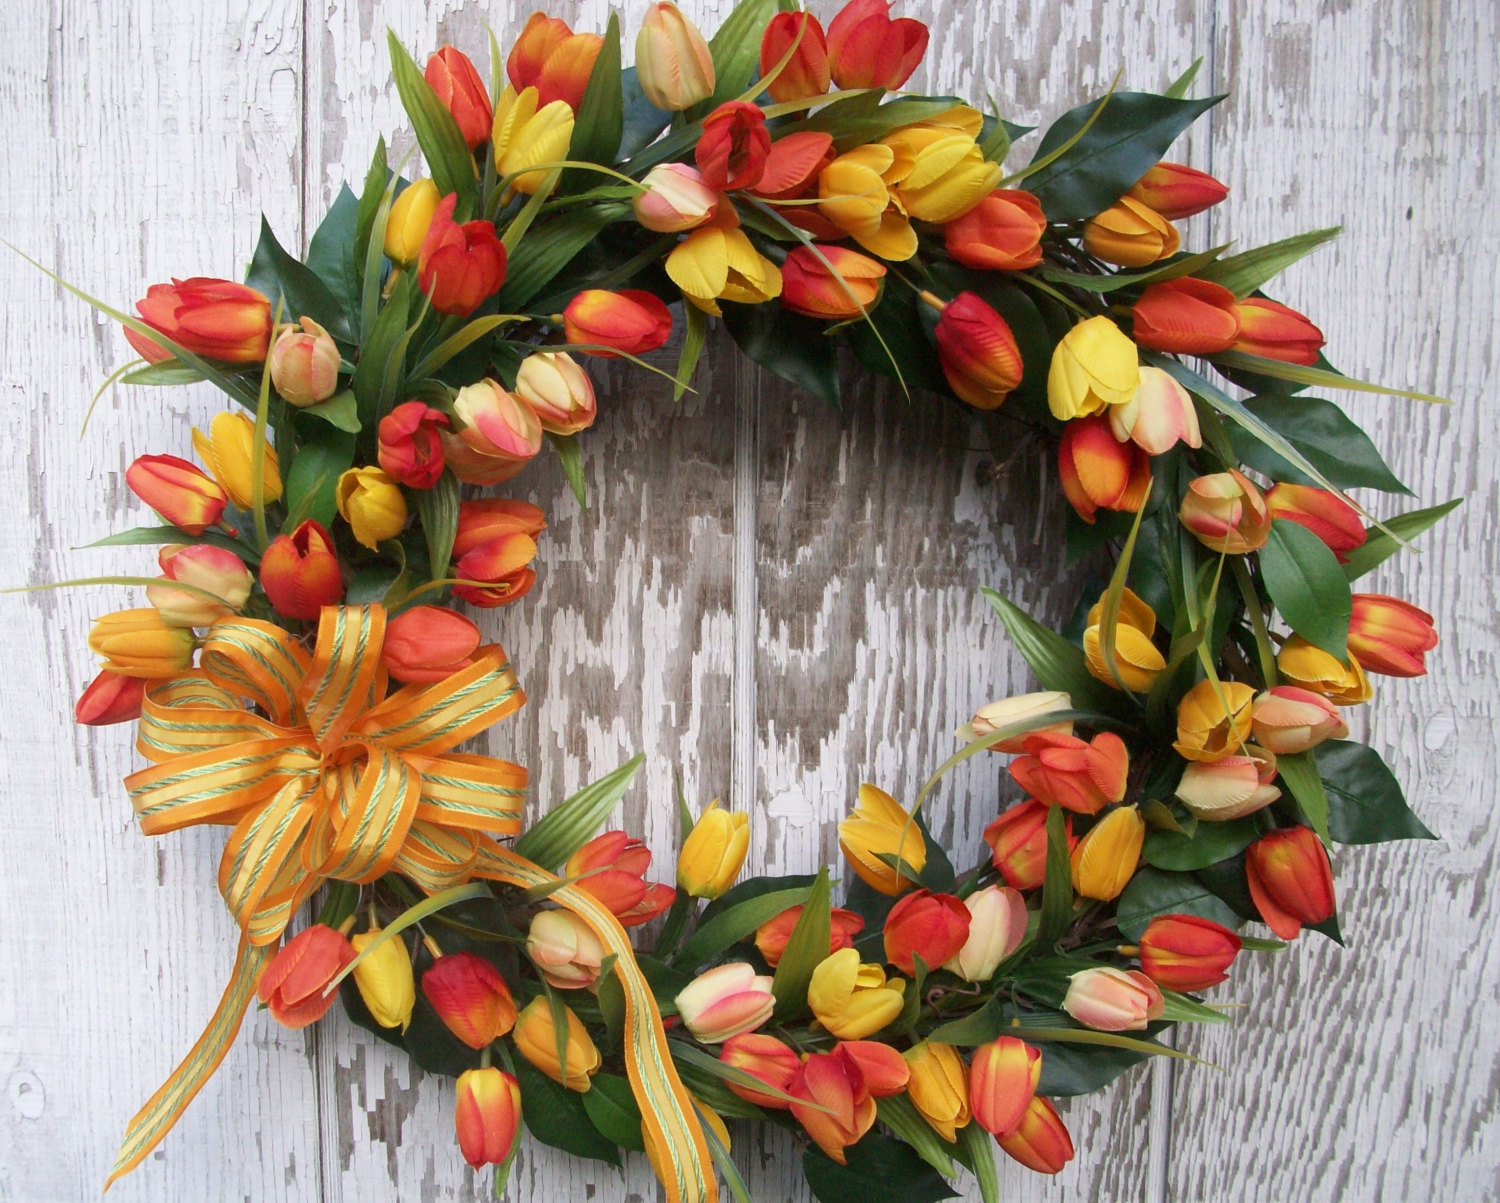 22 Enlivening Handmade Spring Wreath Designs - Style Motivation